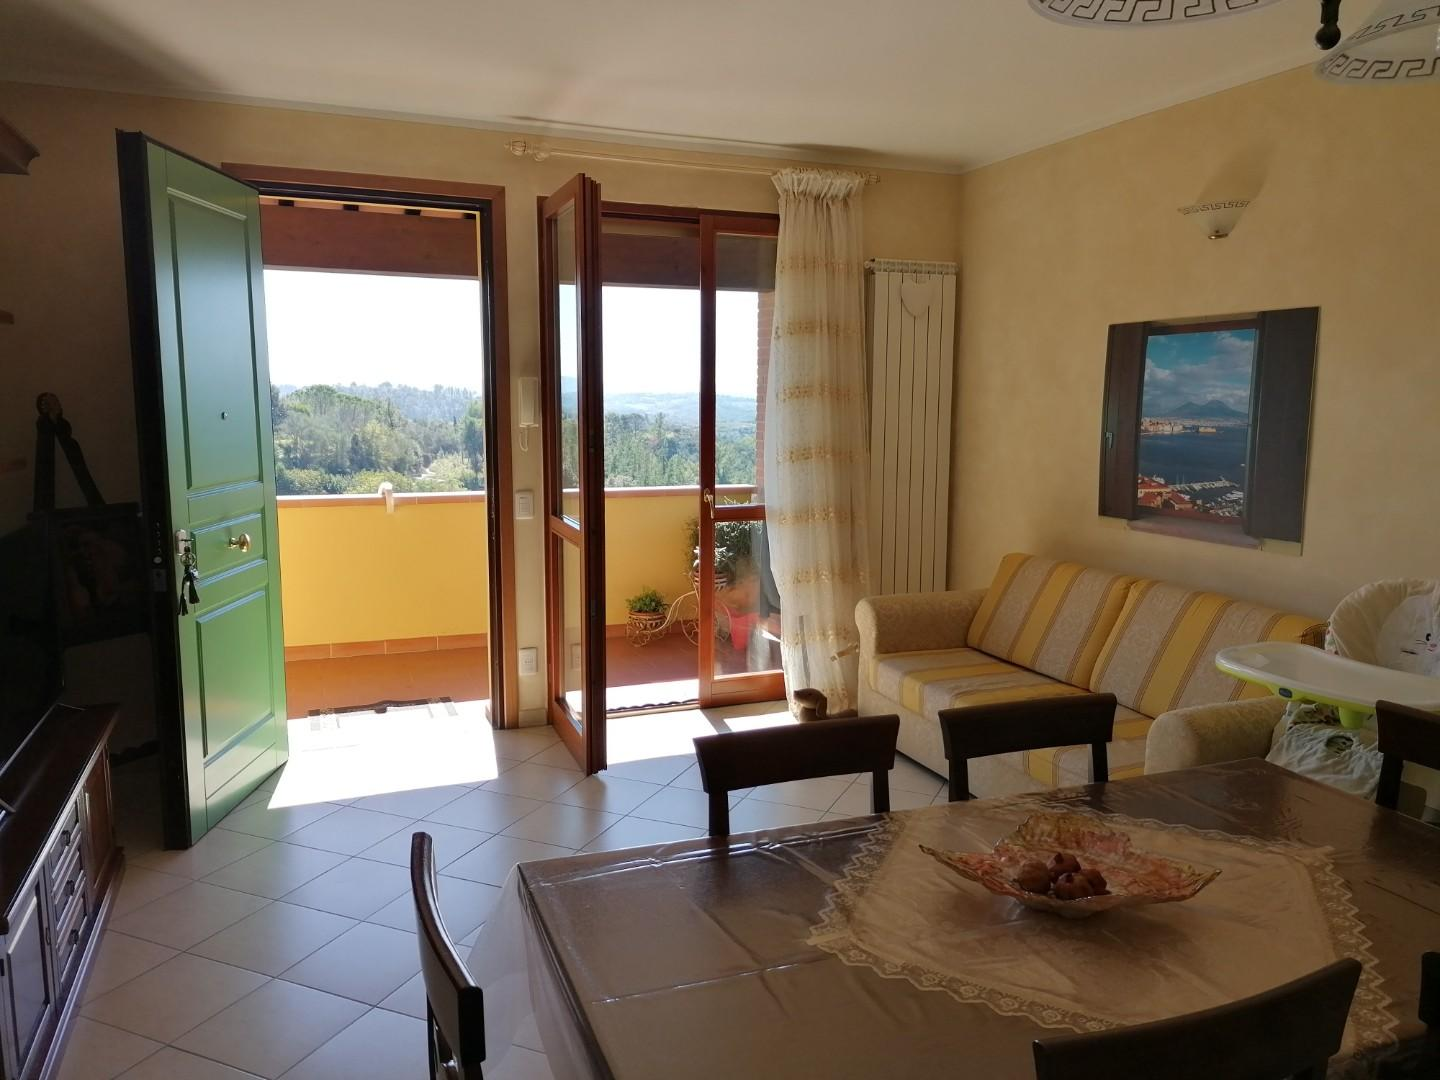 Apartment for sale in Palaia (PI)